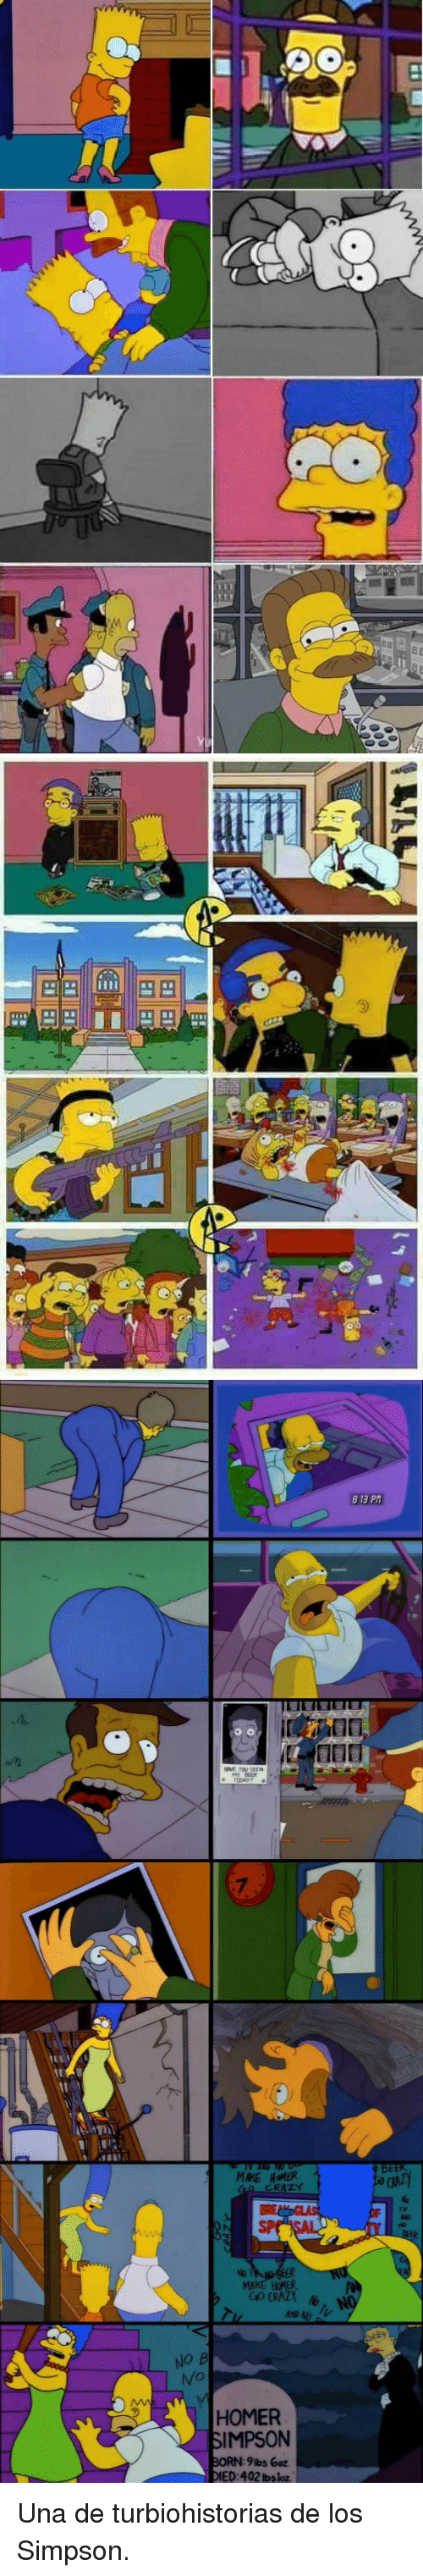 Crazy, Homer Simpson, and Homer: 813 P  7  IT  BEEK  MAKE HOMER  0 CRAZY  7v  SP  GOGRAZ  NO B  HOMER  SIMPSON  BORN:9ibs ooz  ED:402 lbs loz <p>Una de turbiohistorias de los Simpson.</p>